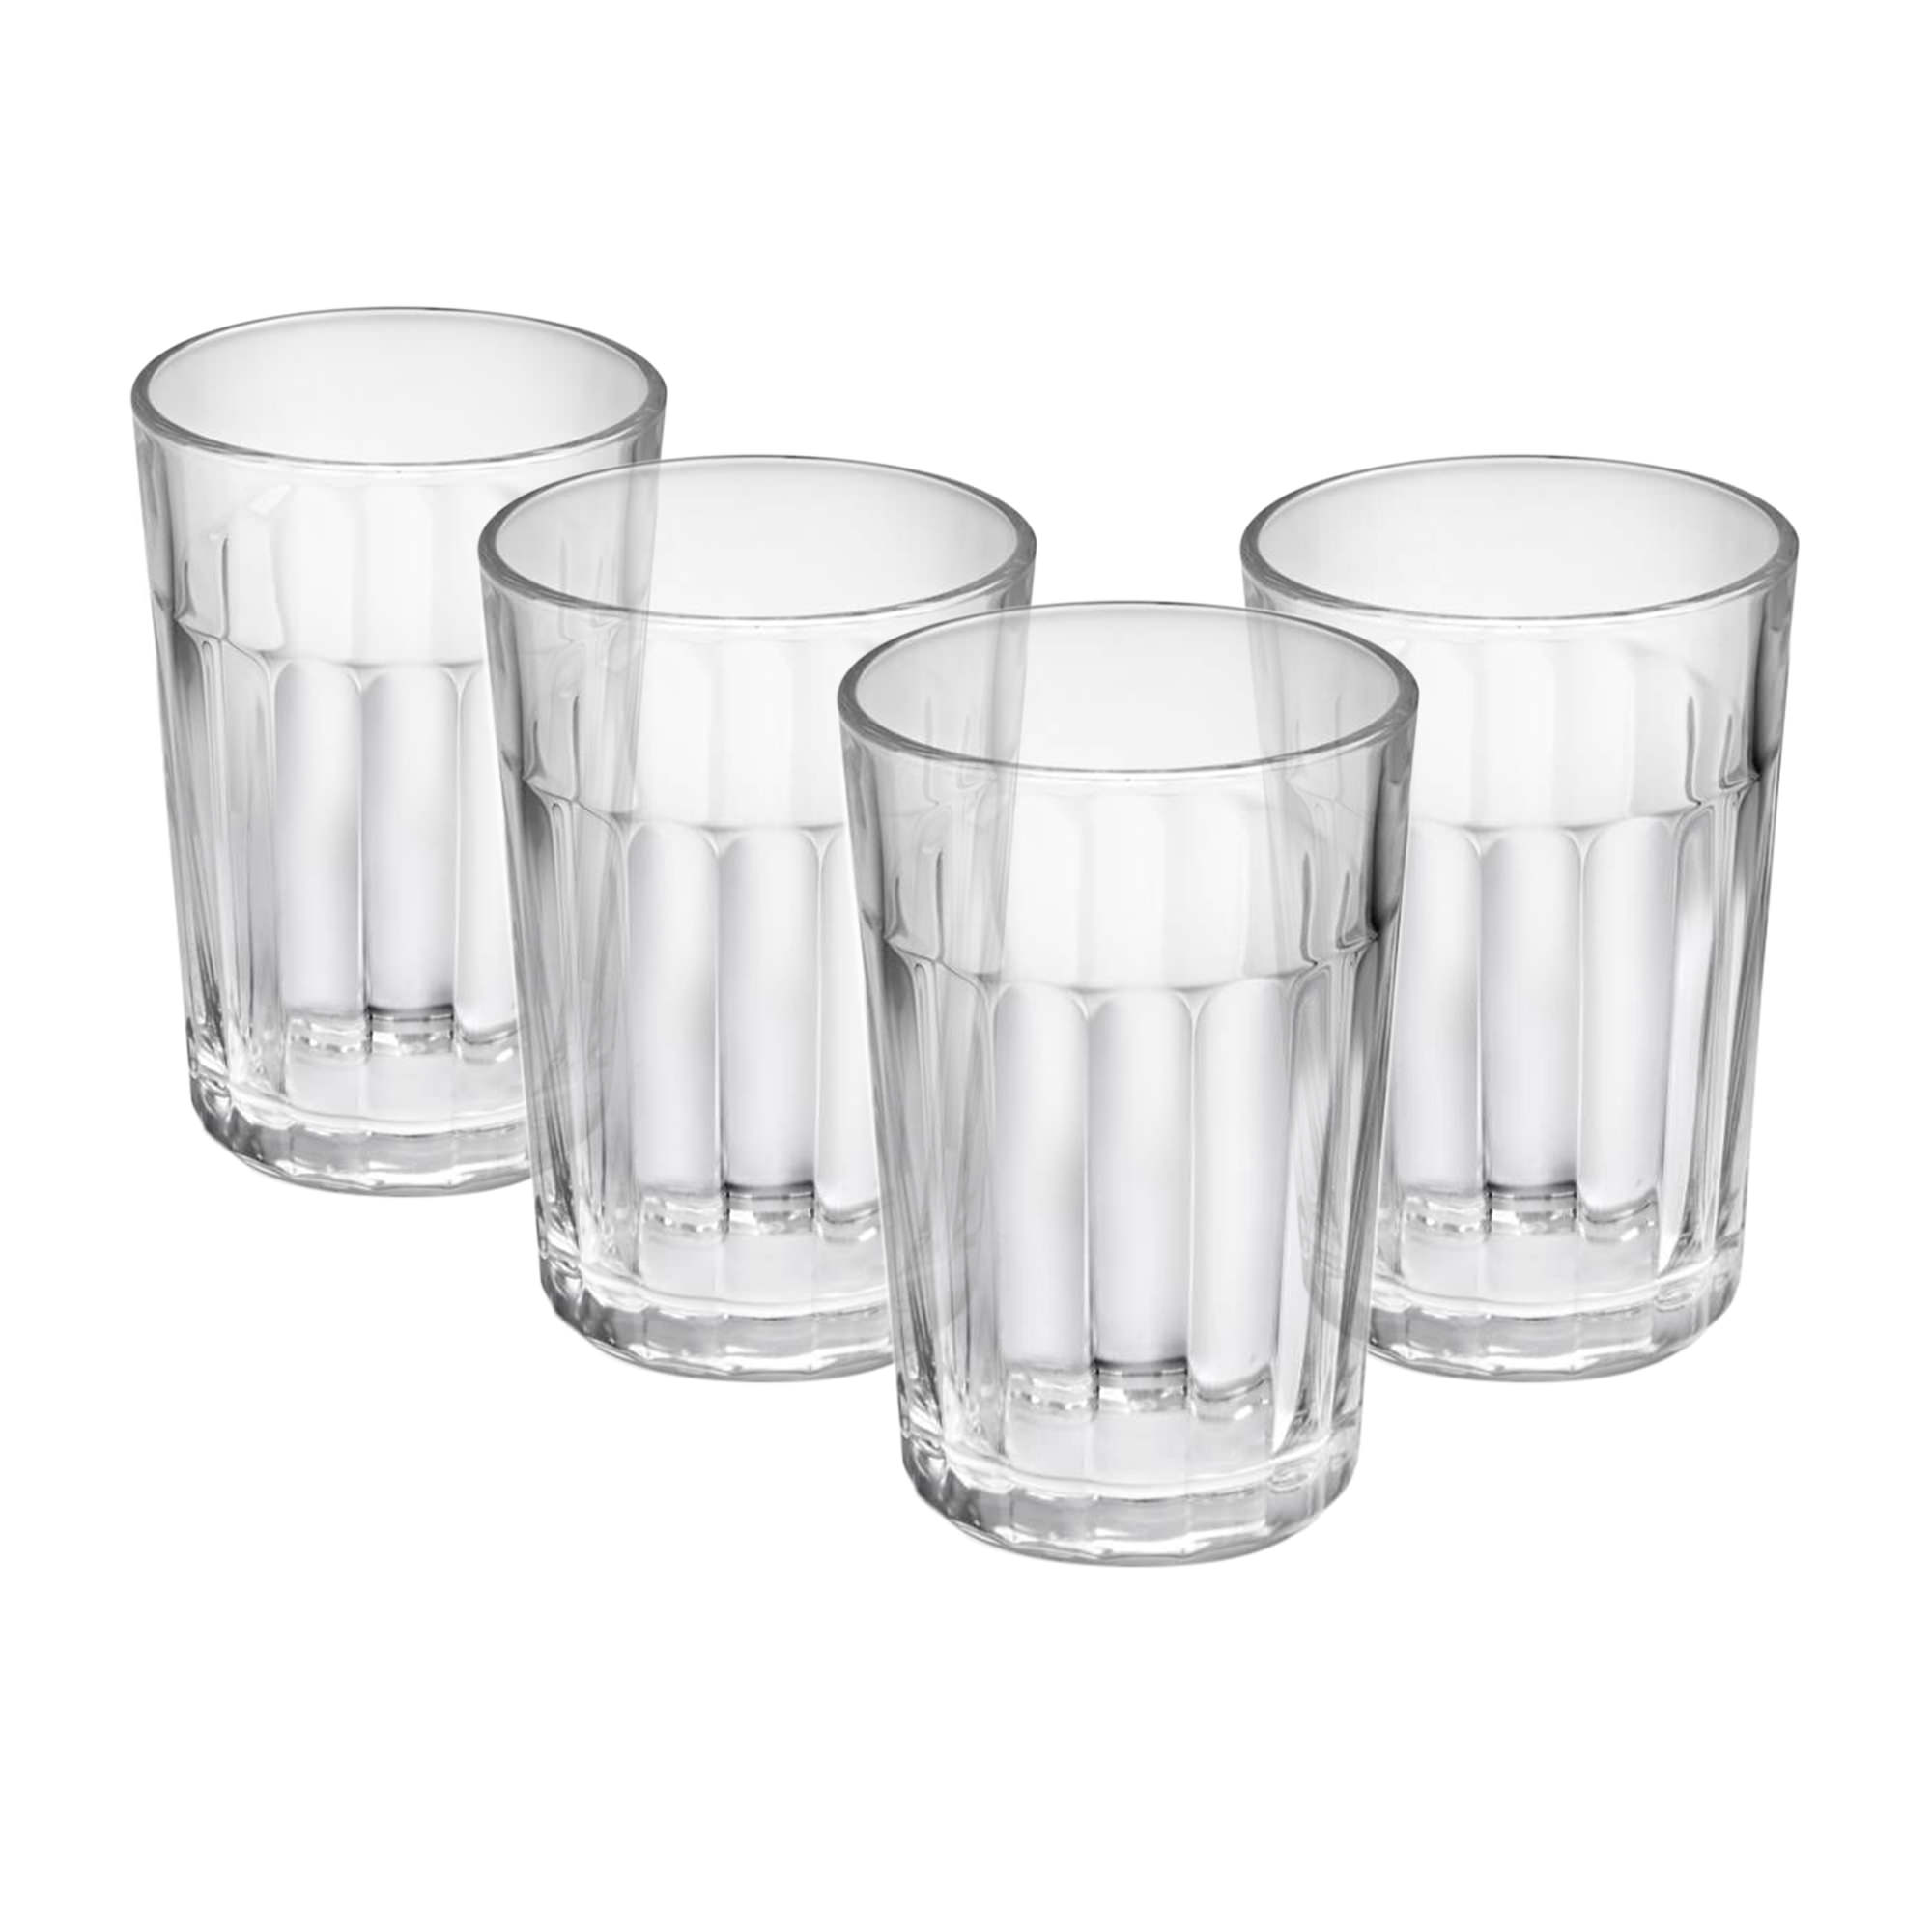 Royal Leerdam Astro 6pc DOF Glass 320ml